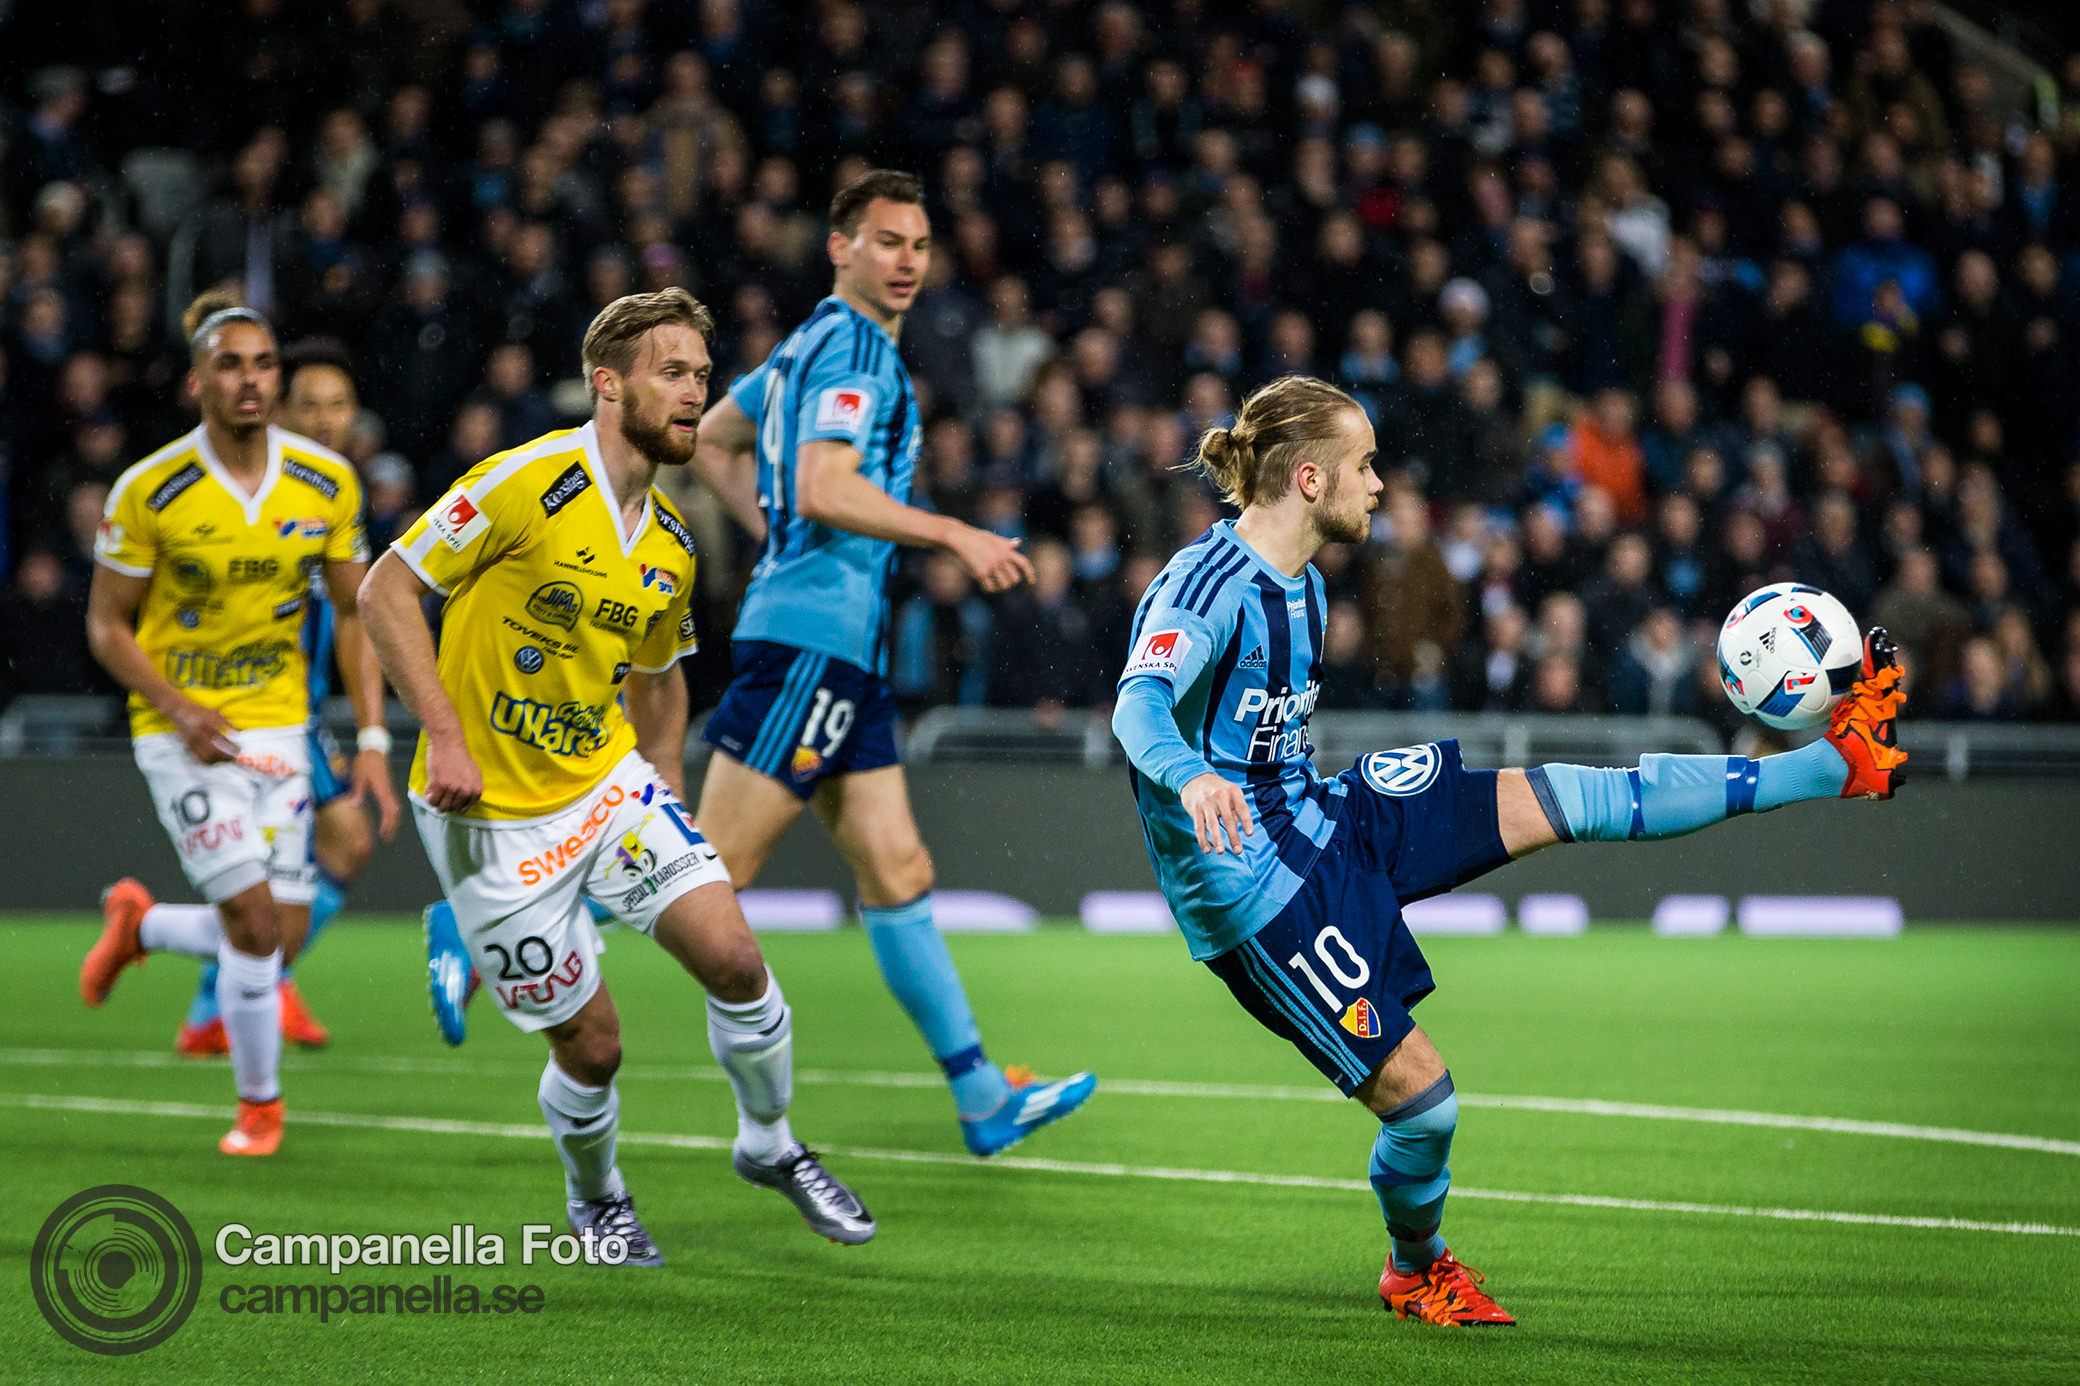 Djurgården crushes Falkenberg - Michael Campanella Photography